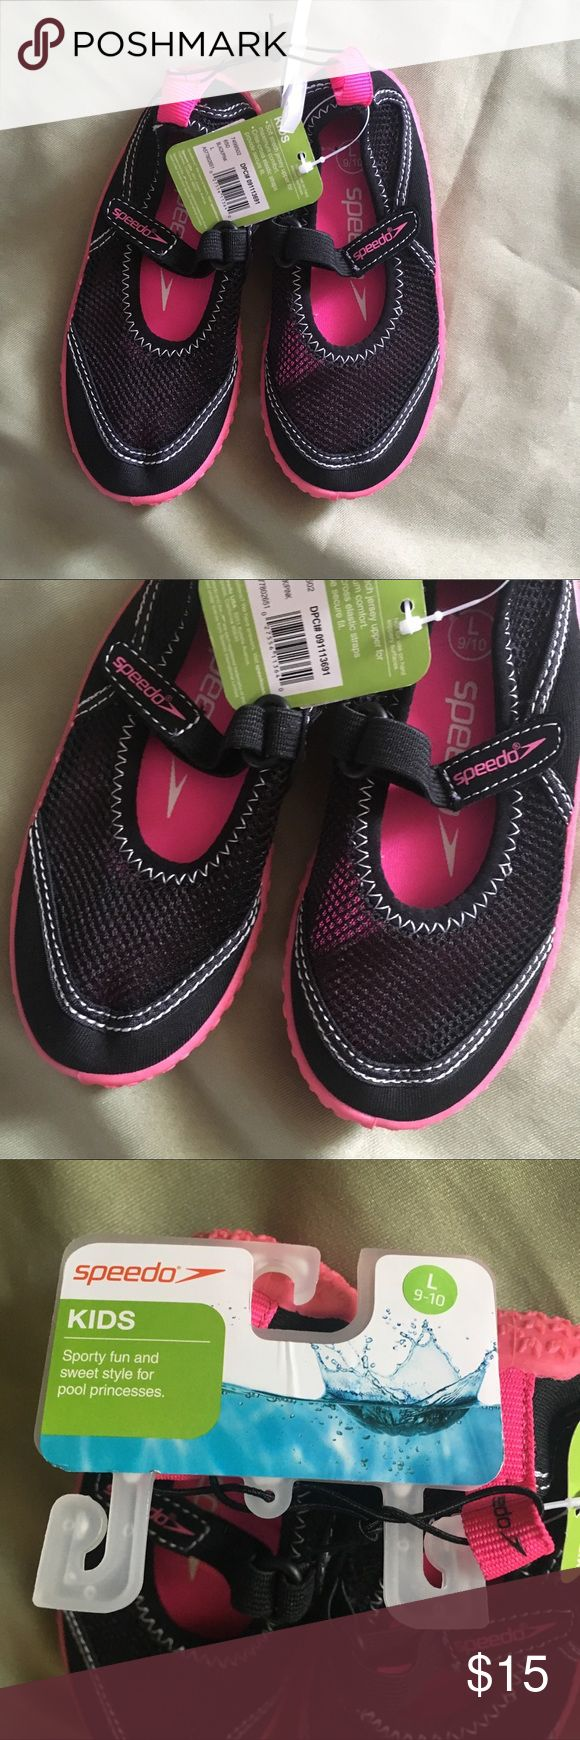 Speedo Kids Water Shoes Sand Large 9 10 NWT Price firm unless bundled! Speedo Shoes Water Shoes